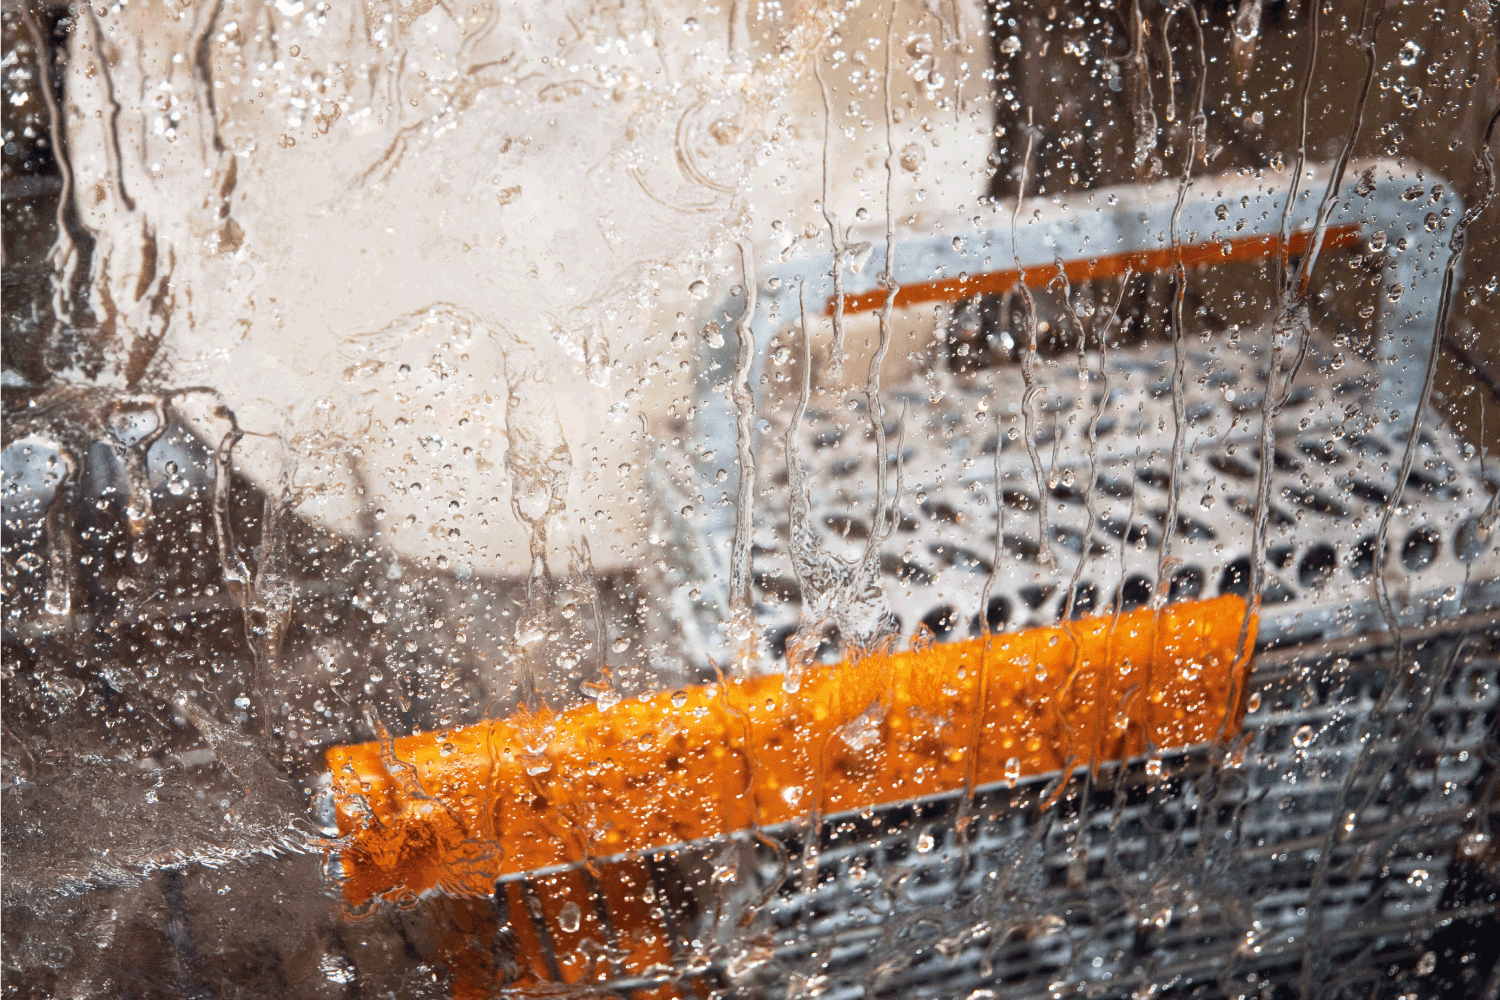 wet glass window of a dishwasher in operation